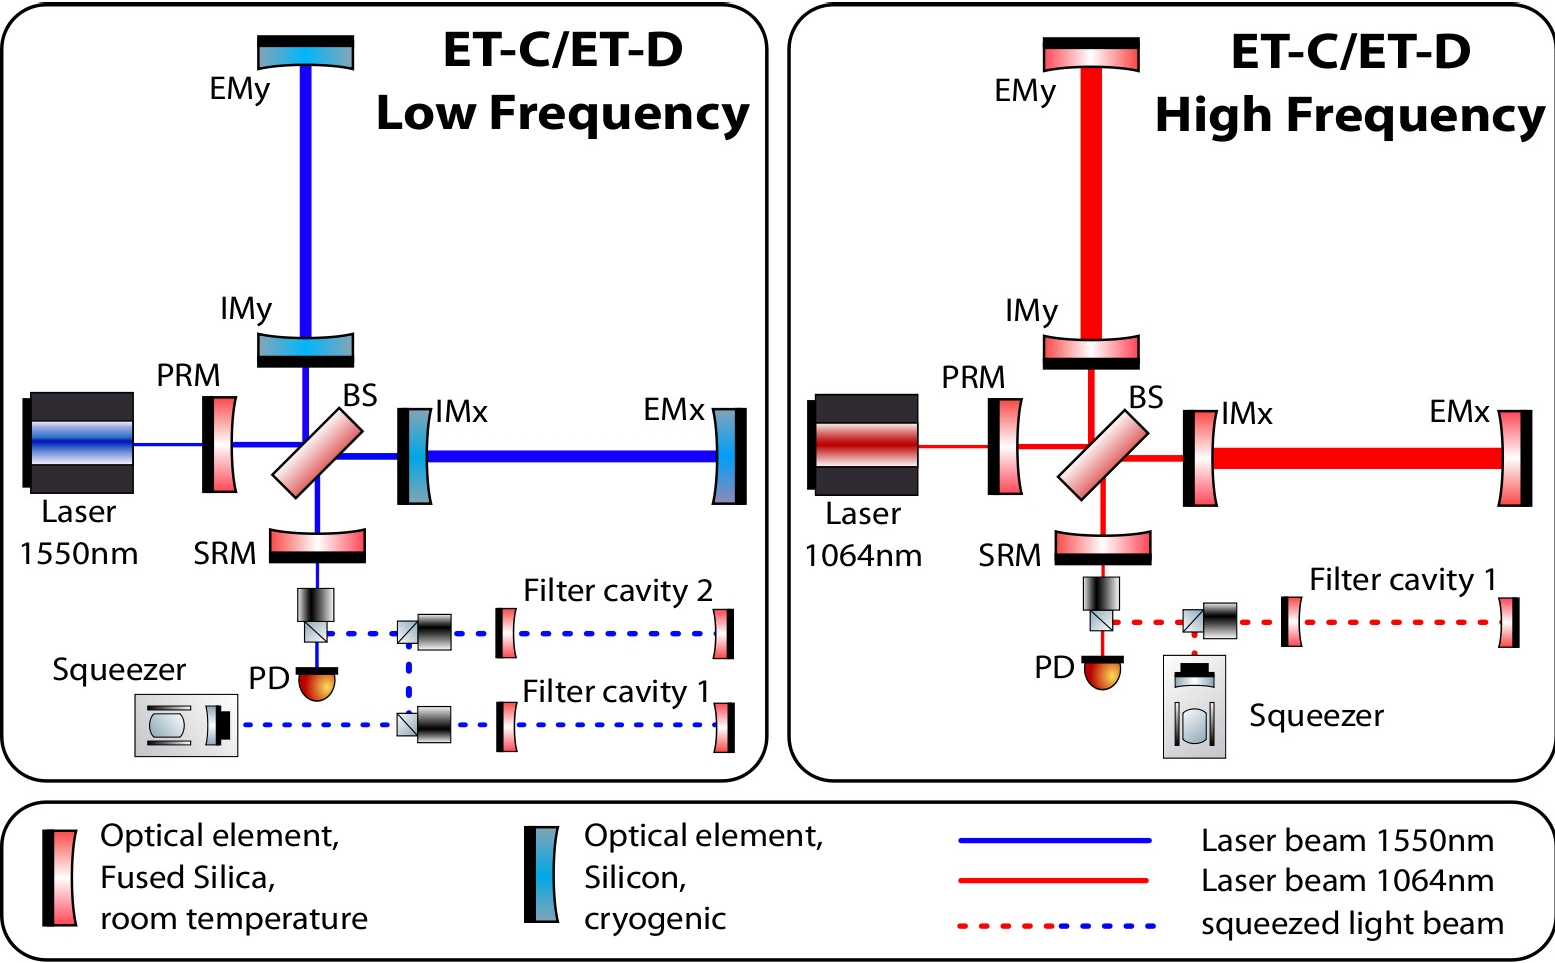 Low Frequency and High Frequency detectrs